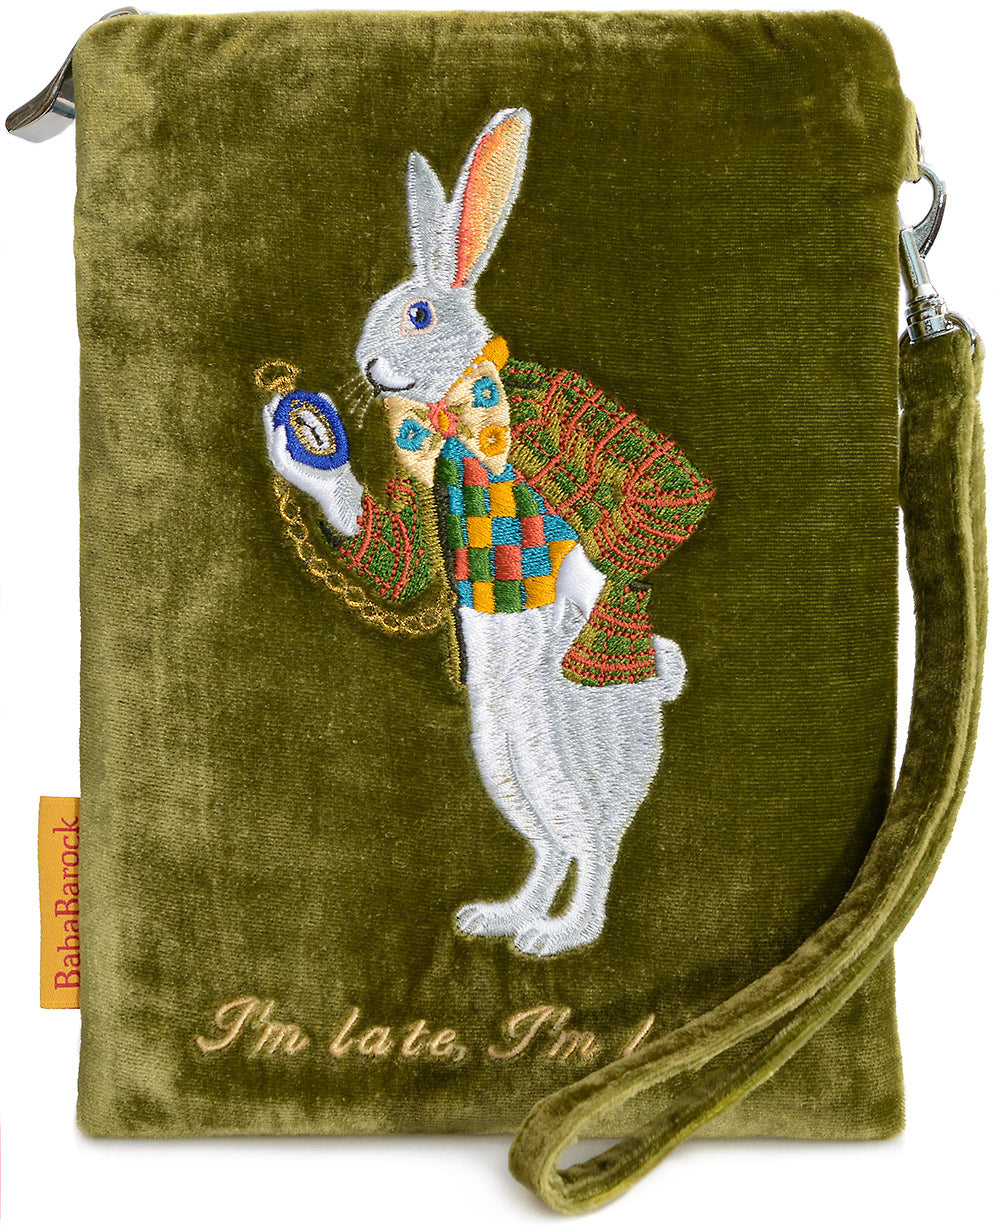 white rabbit, alice in wonderland, I'm late, embroidered, silk velvet, wristlet, pouch